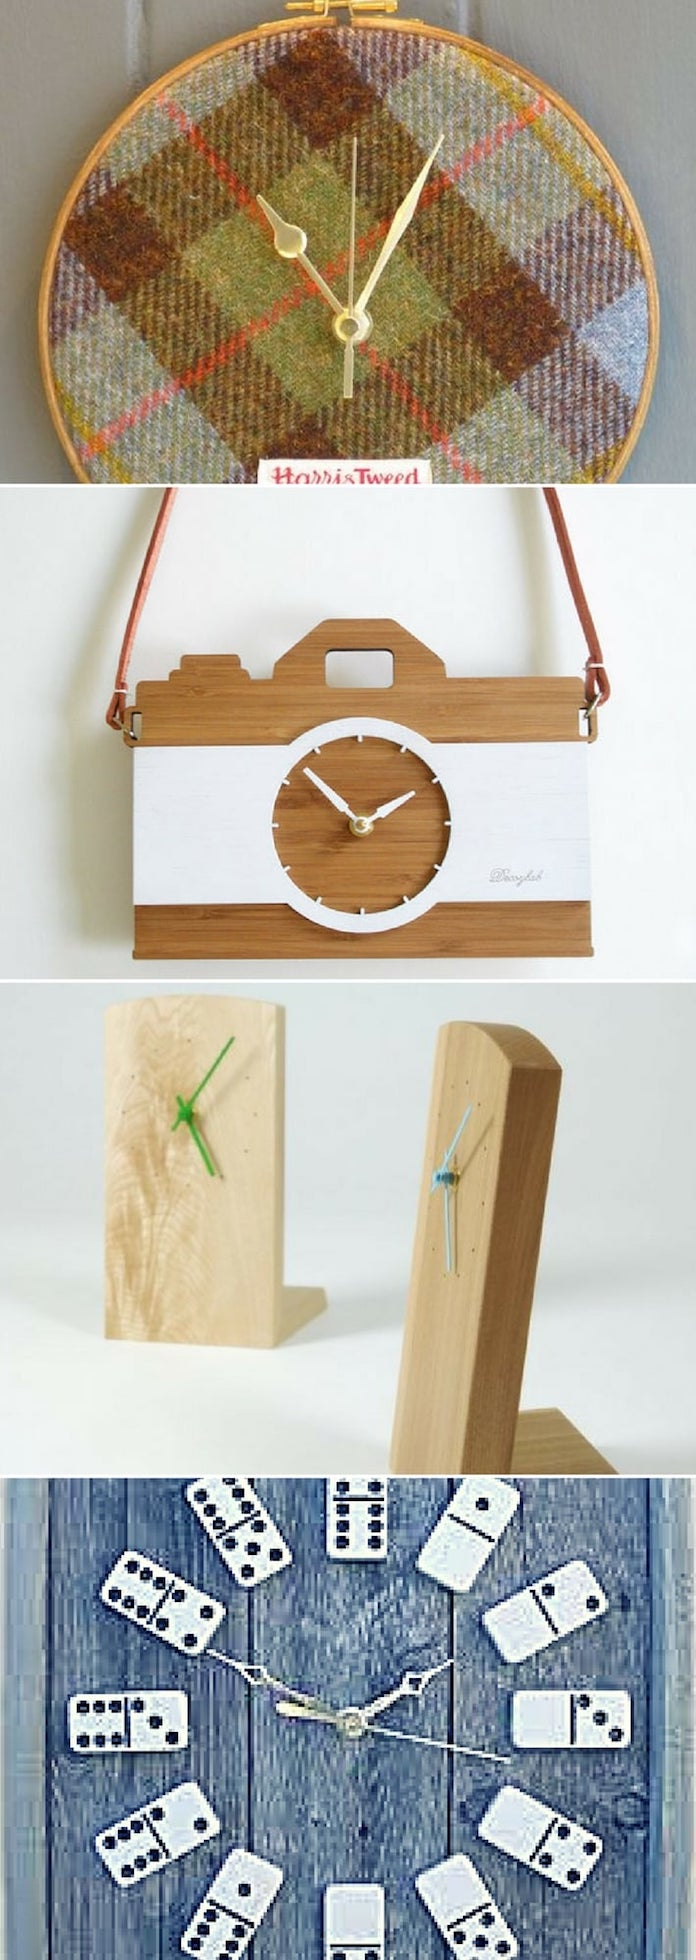 For a gift clock